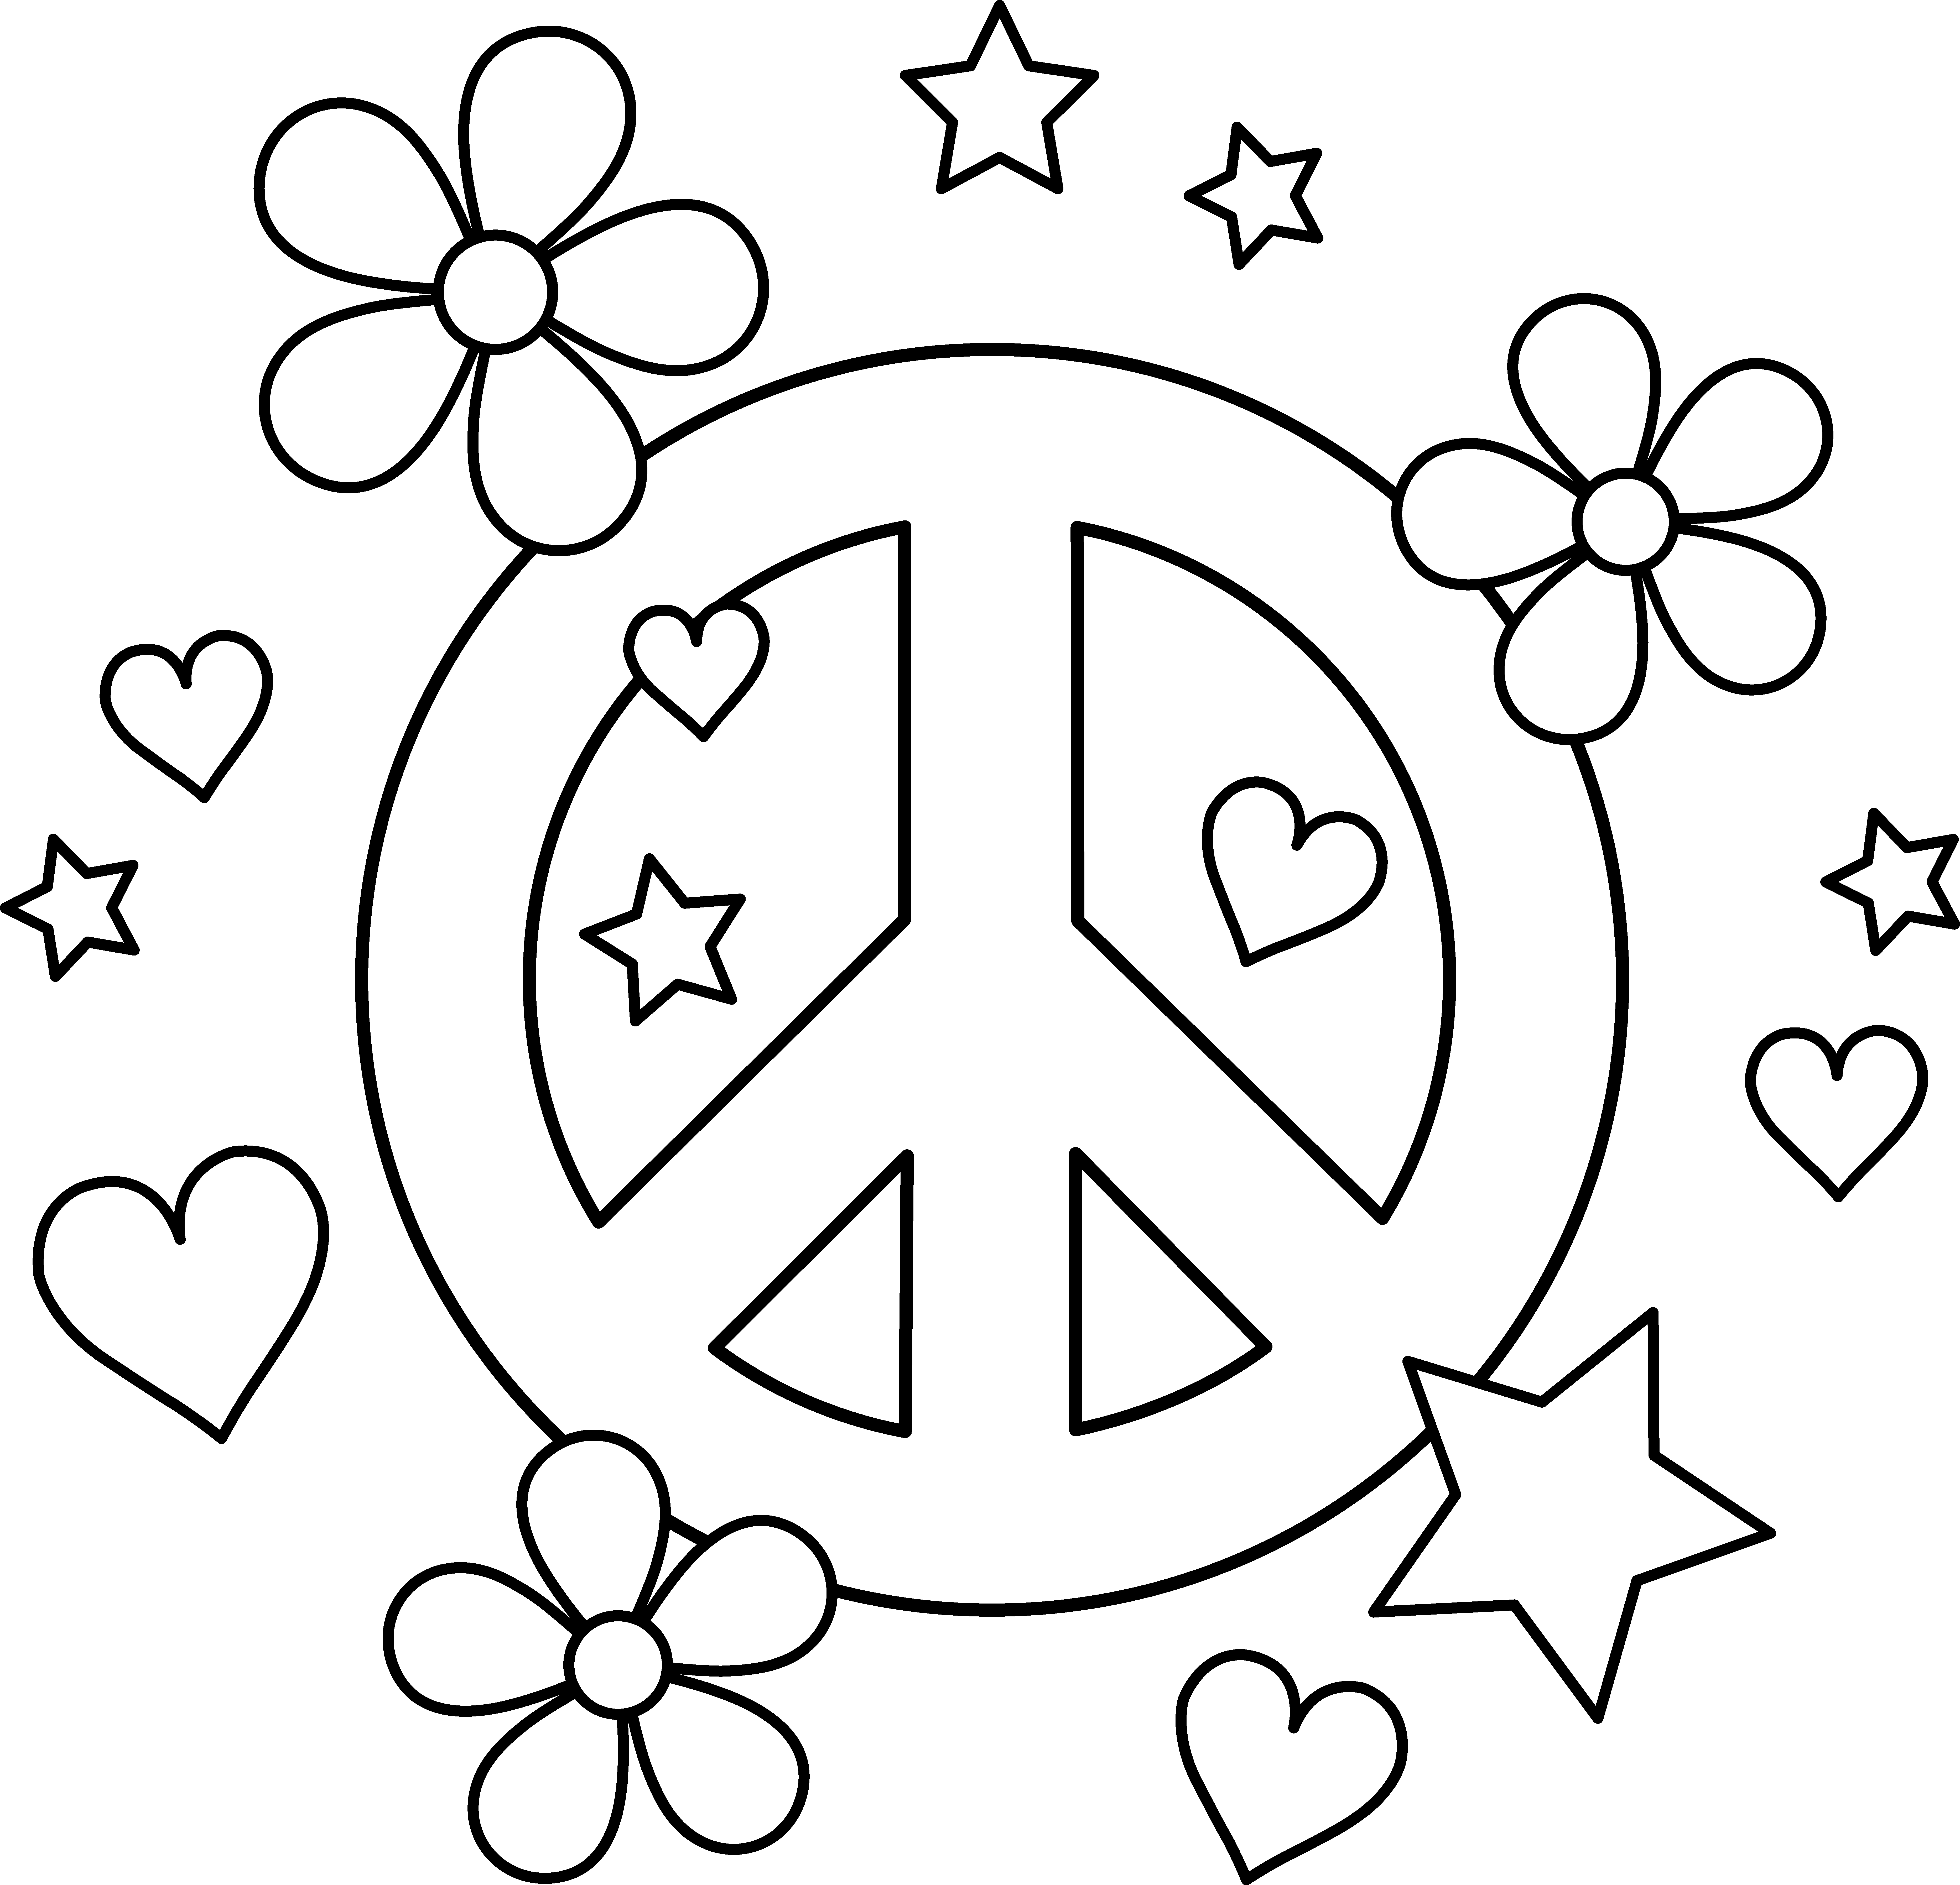 peace sign coloring pages - colorable peace sign design 1301